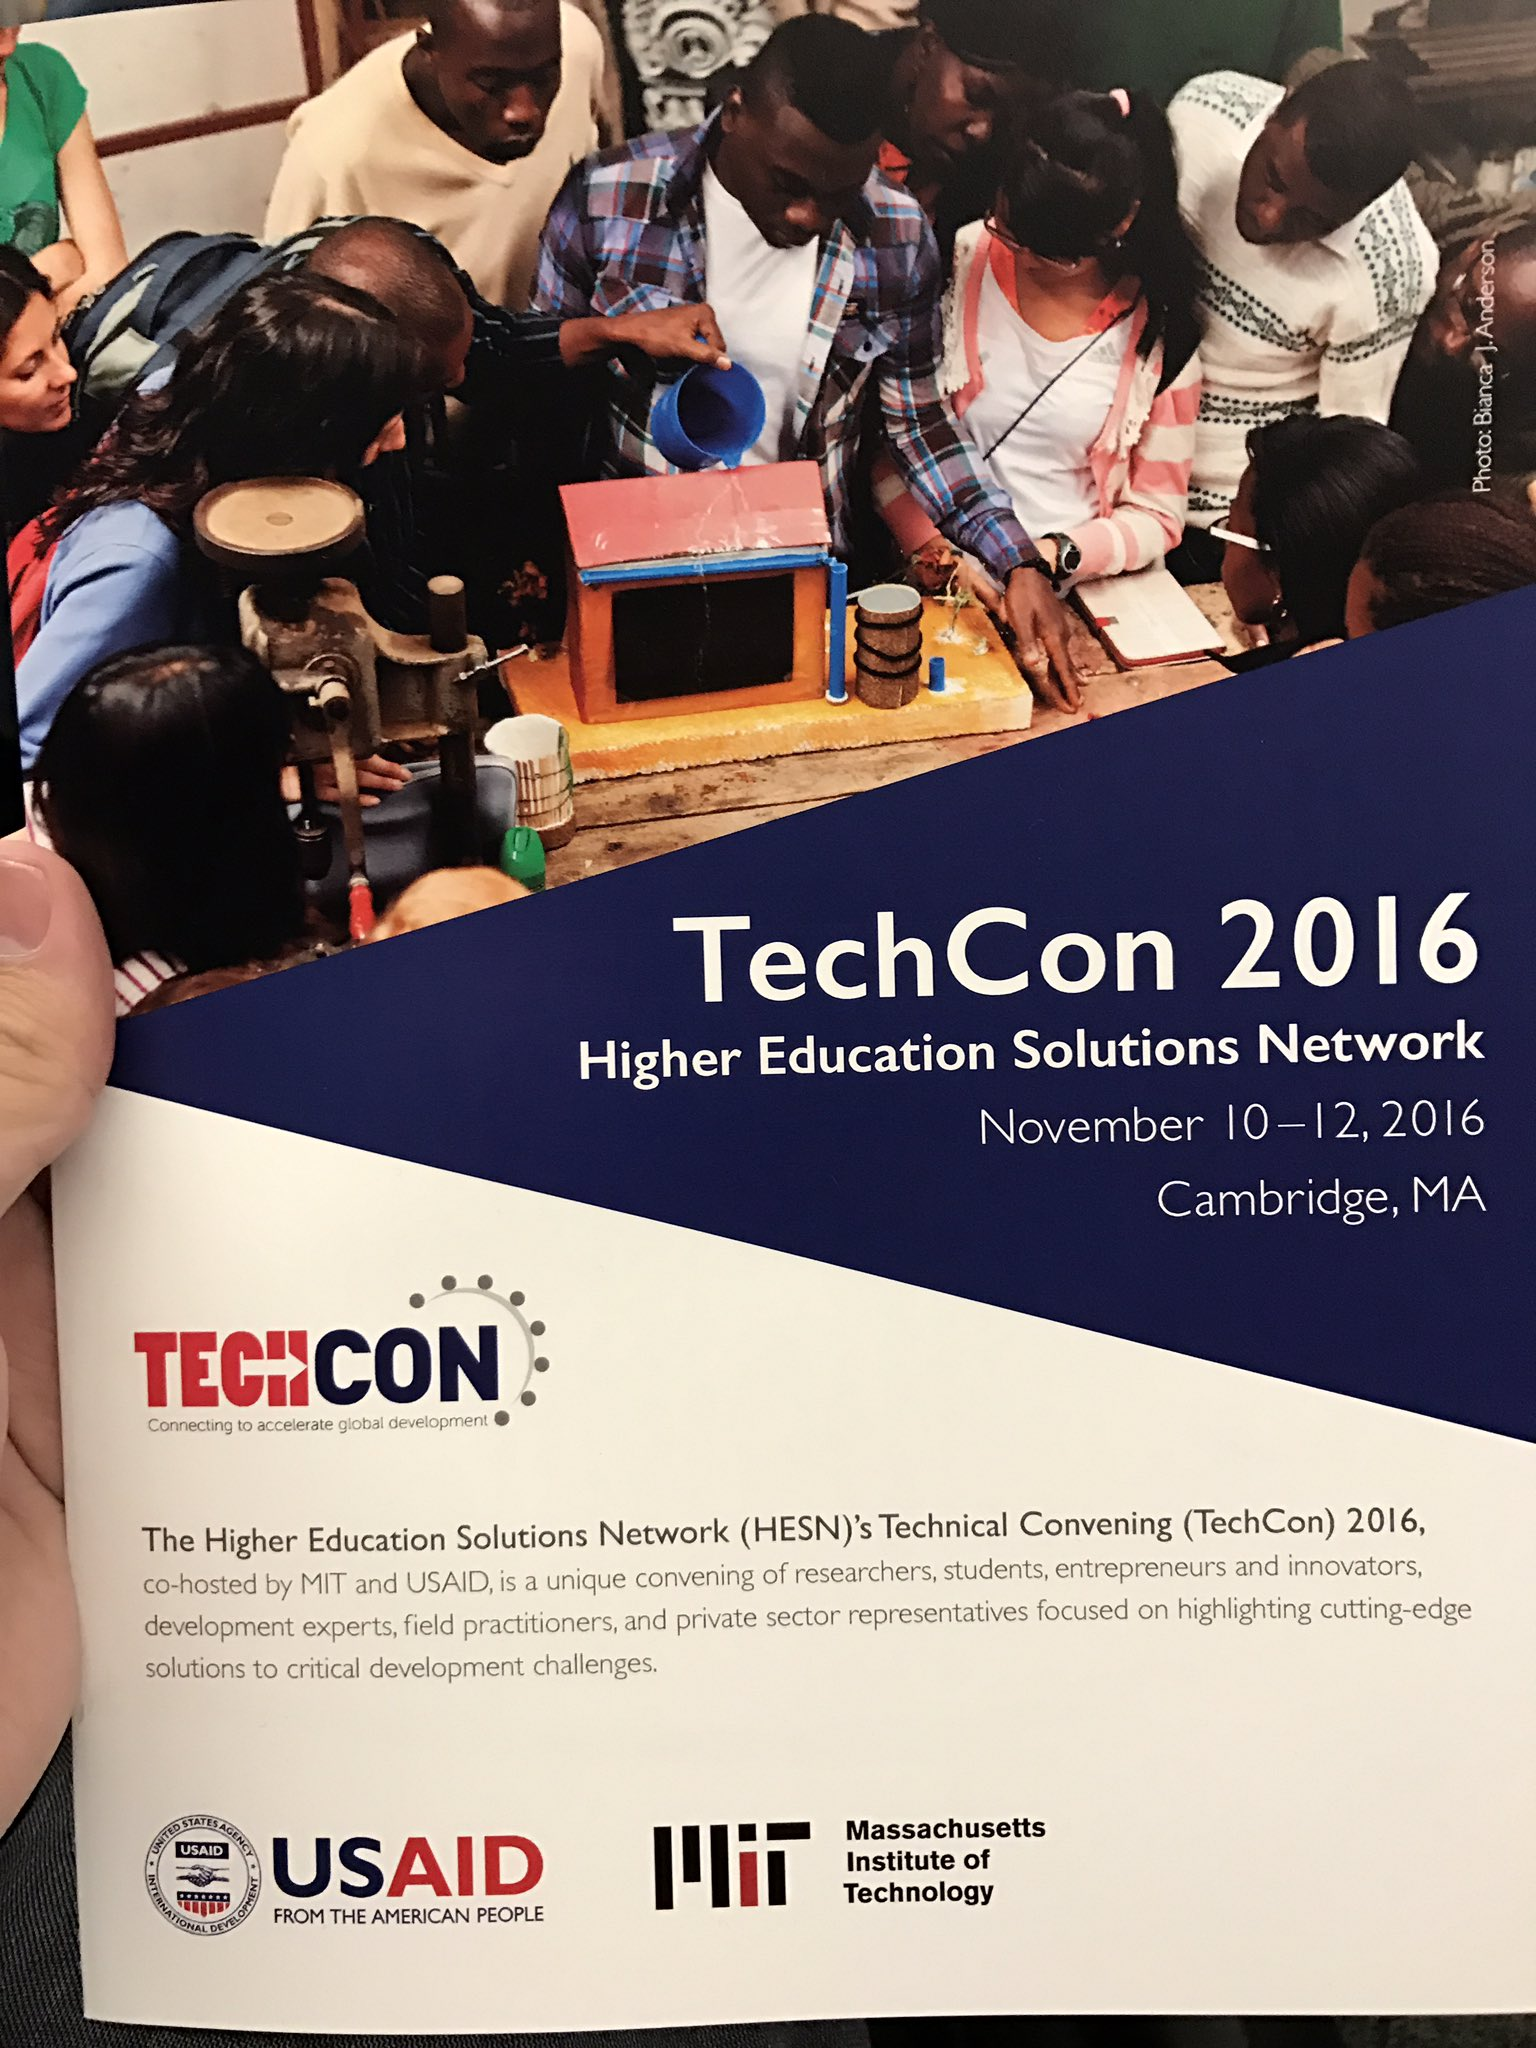 At MIT & USAID TechCon -- surrounded by so many innovators working on solving problems of developing-world. #techcon2016 https://t.co/ypZc4hgUT1